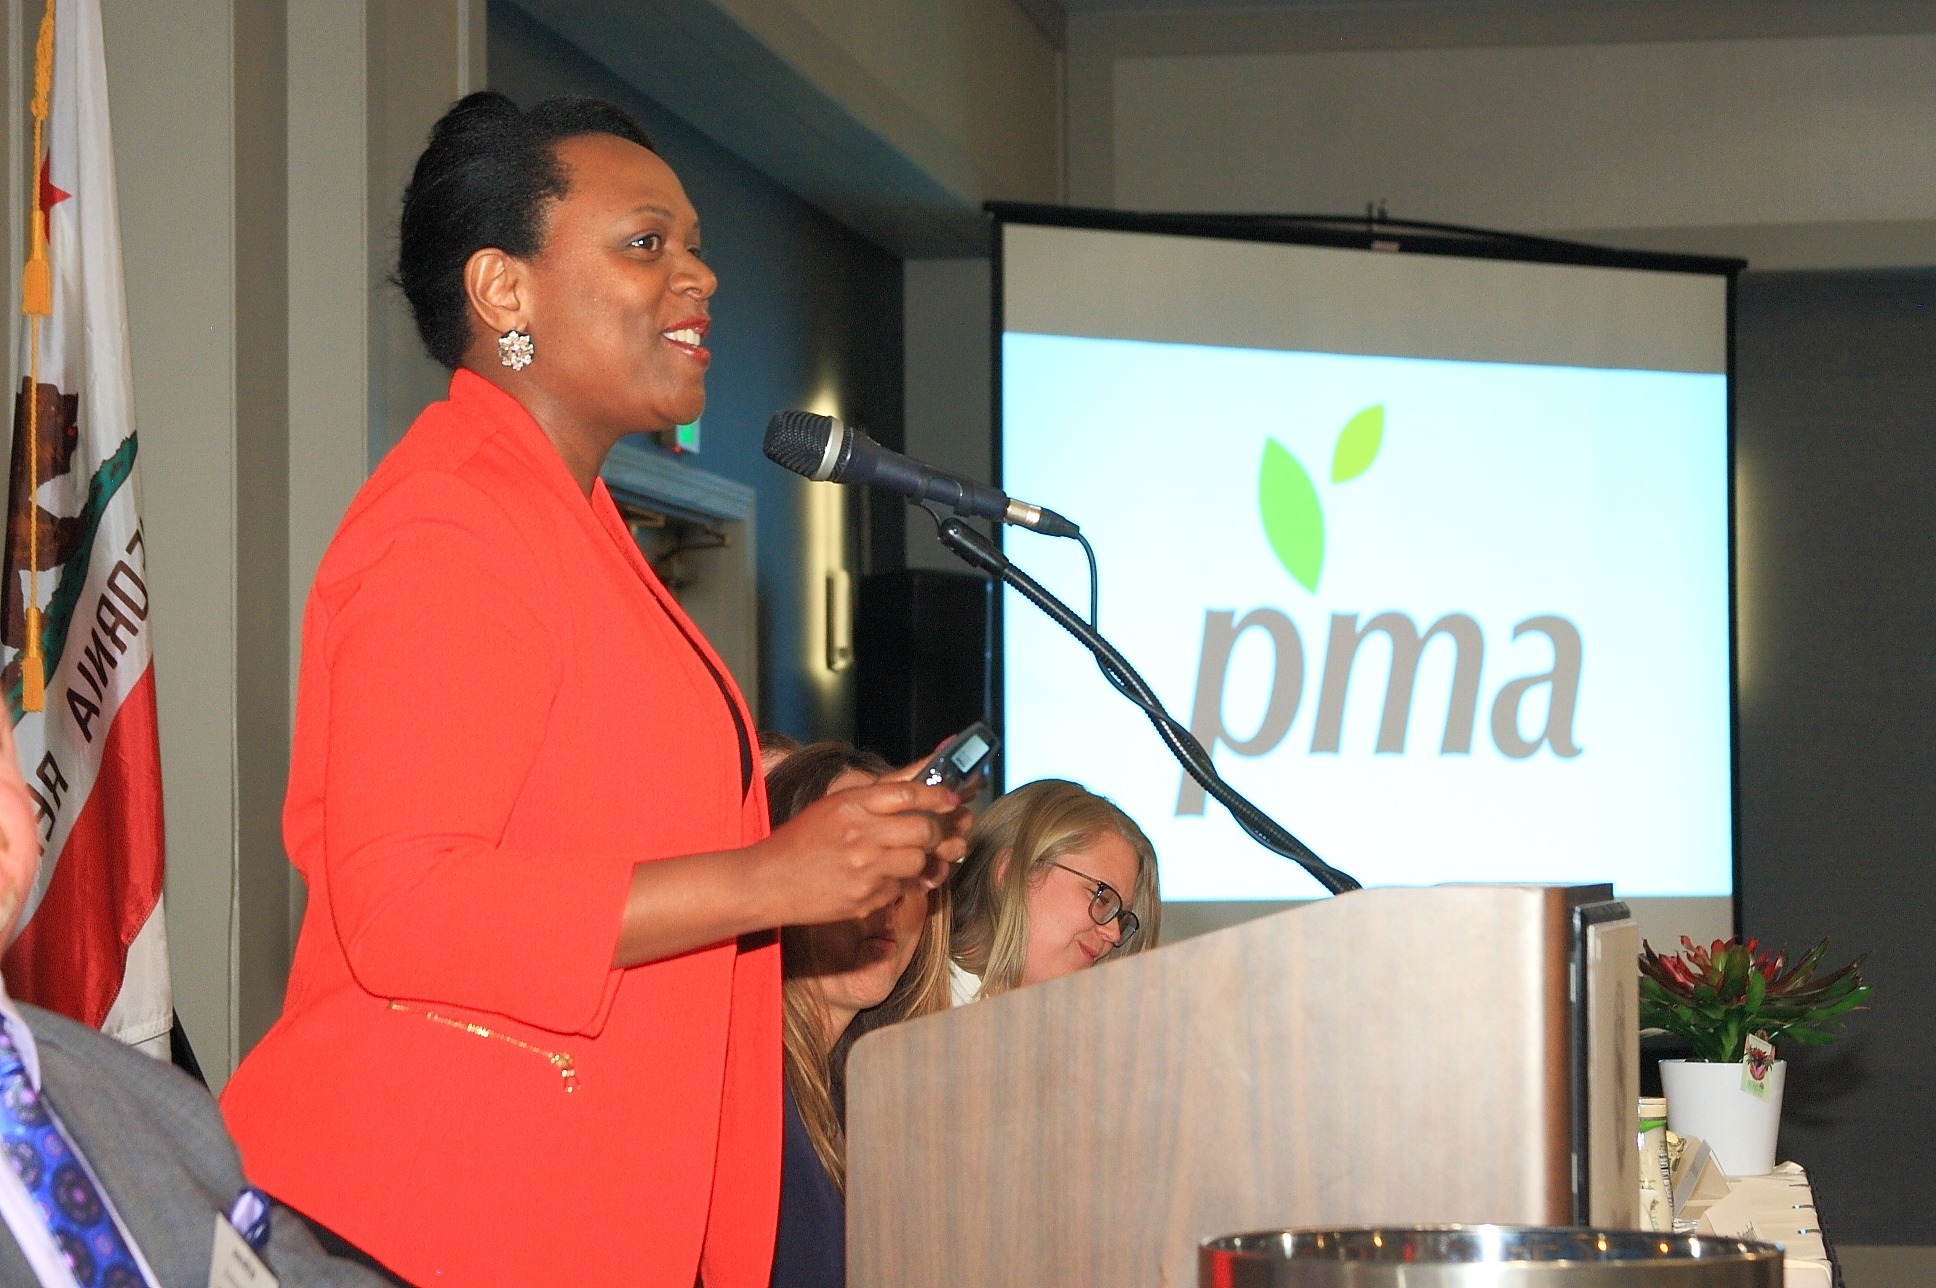 Lauren M. Scott of Produce Marketing Association presenting at the FPFC October Luncheon.